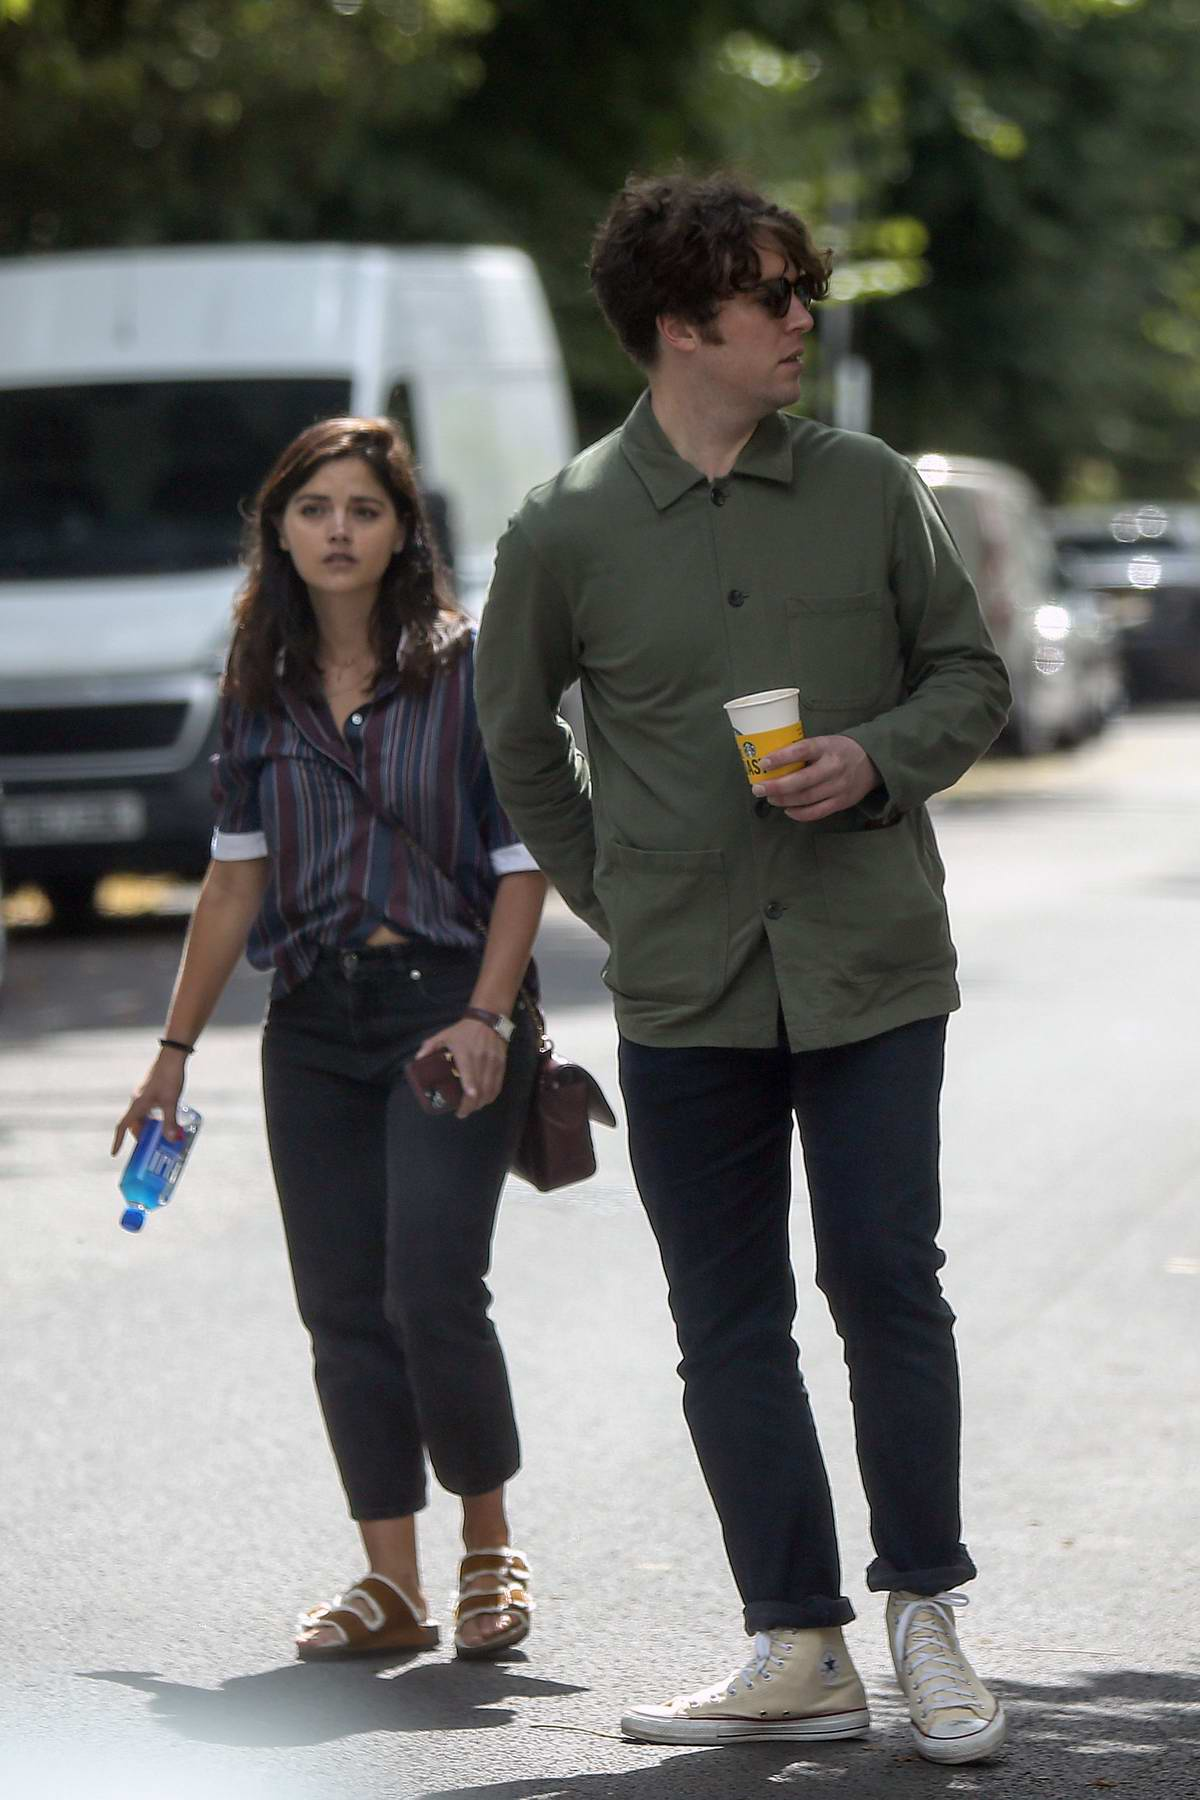 Jenna Coleman and Tom Hughes spotted together through the street in London, UK